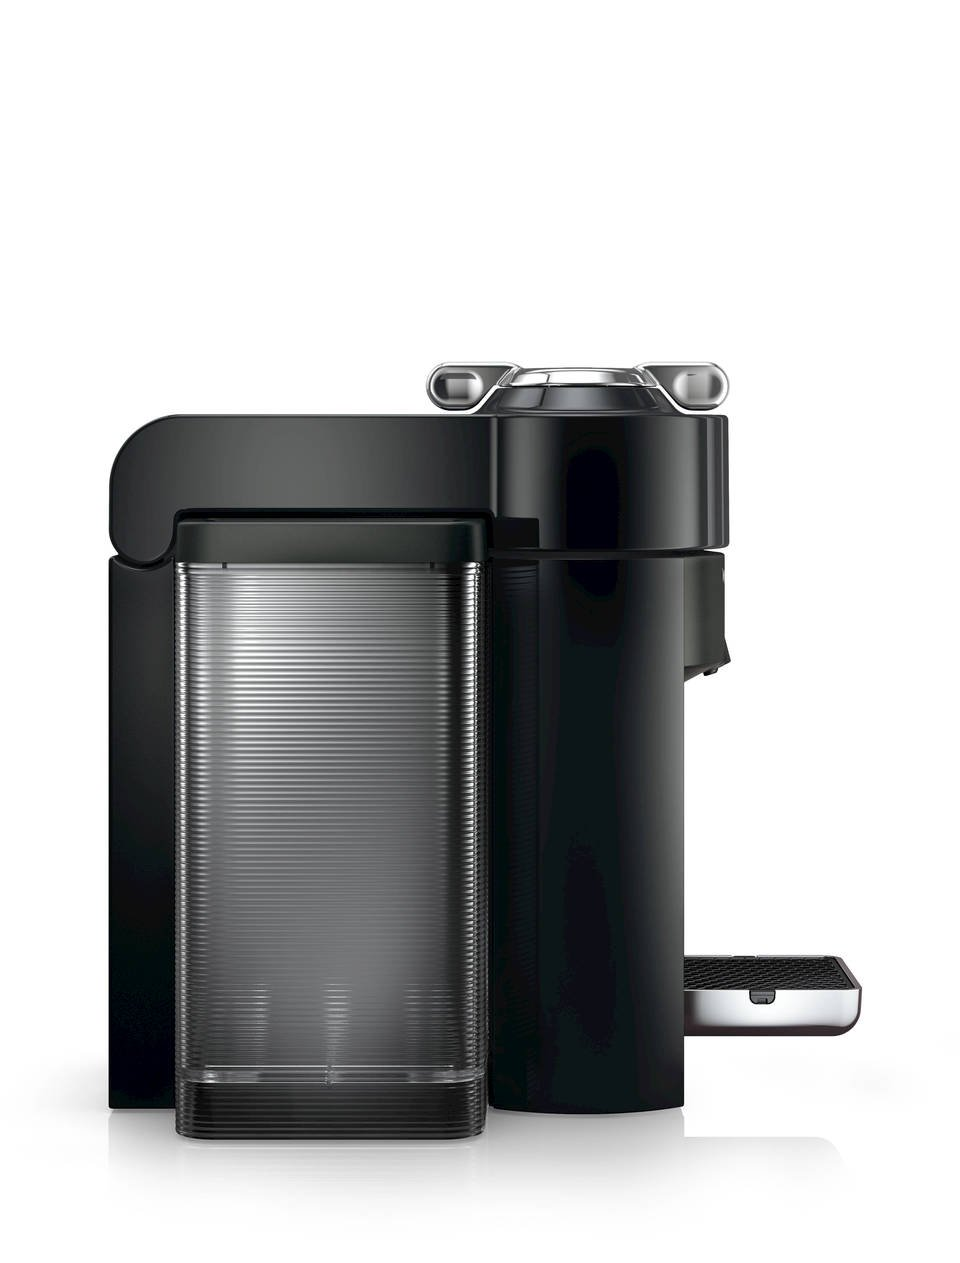 Nespresso A+GCC1-US-BK-NE VertuoLine Evoluo Deluxe Coffee & Espresso Maker with Aeroccino Plus Milk Frother, Black (Discontinued Model) by Nespresso (Image #4)